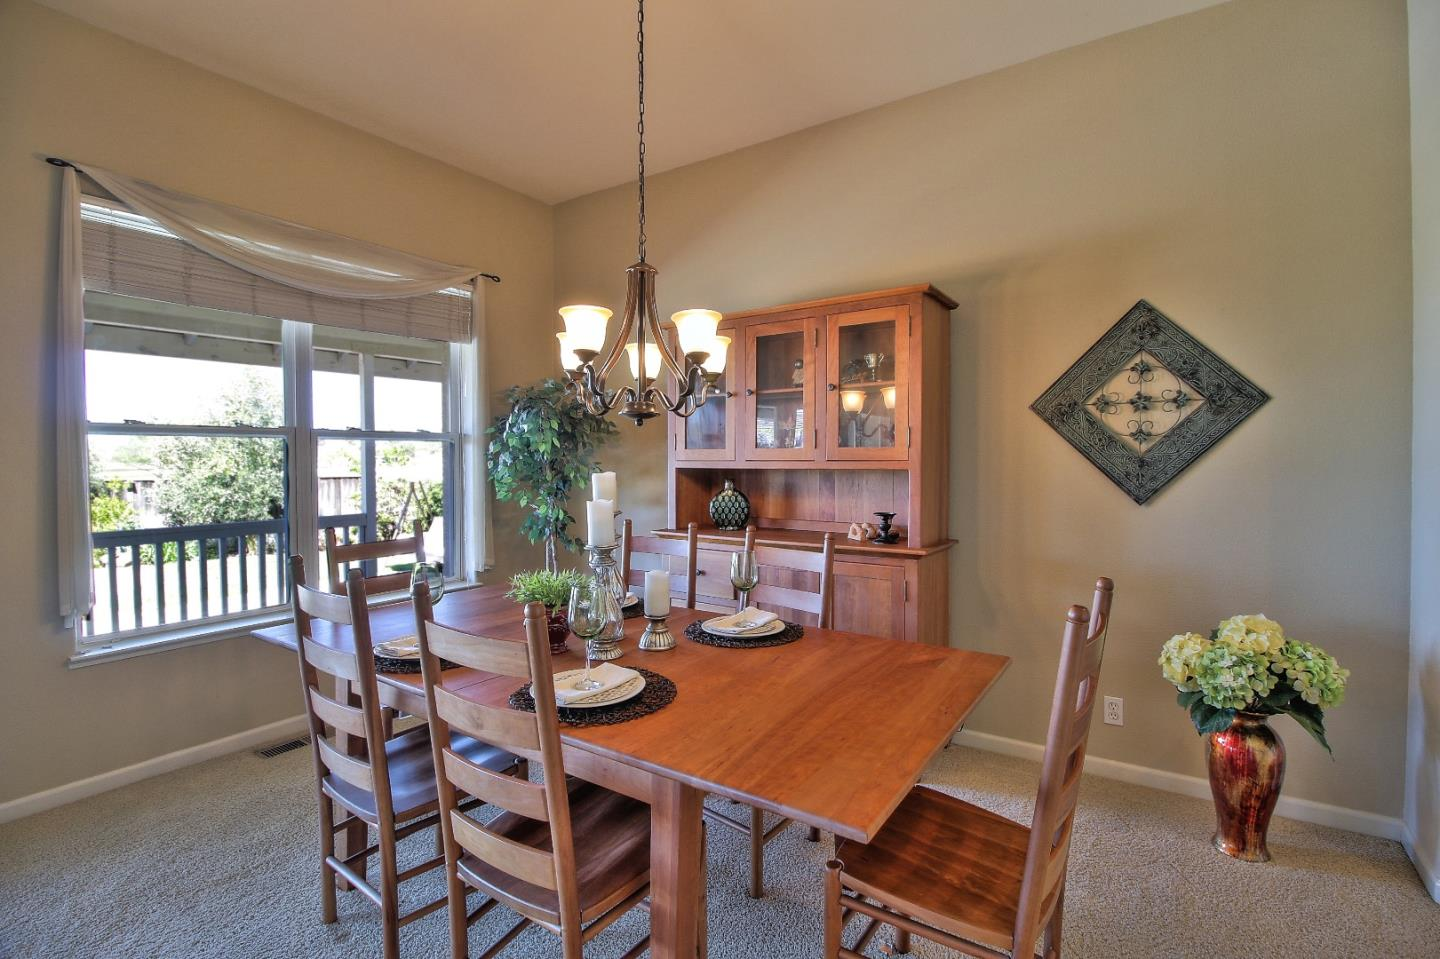 Additional photo for property listing at 2395 Magnolia Ct  MORGAN HILL, CALIFORNIA 95037